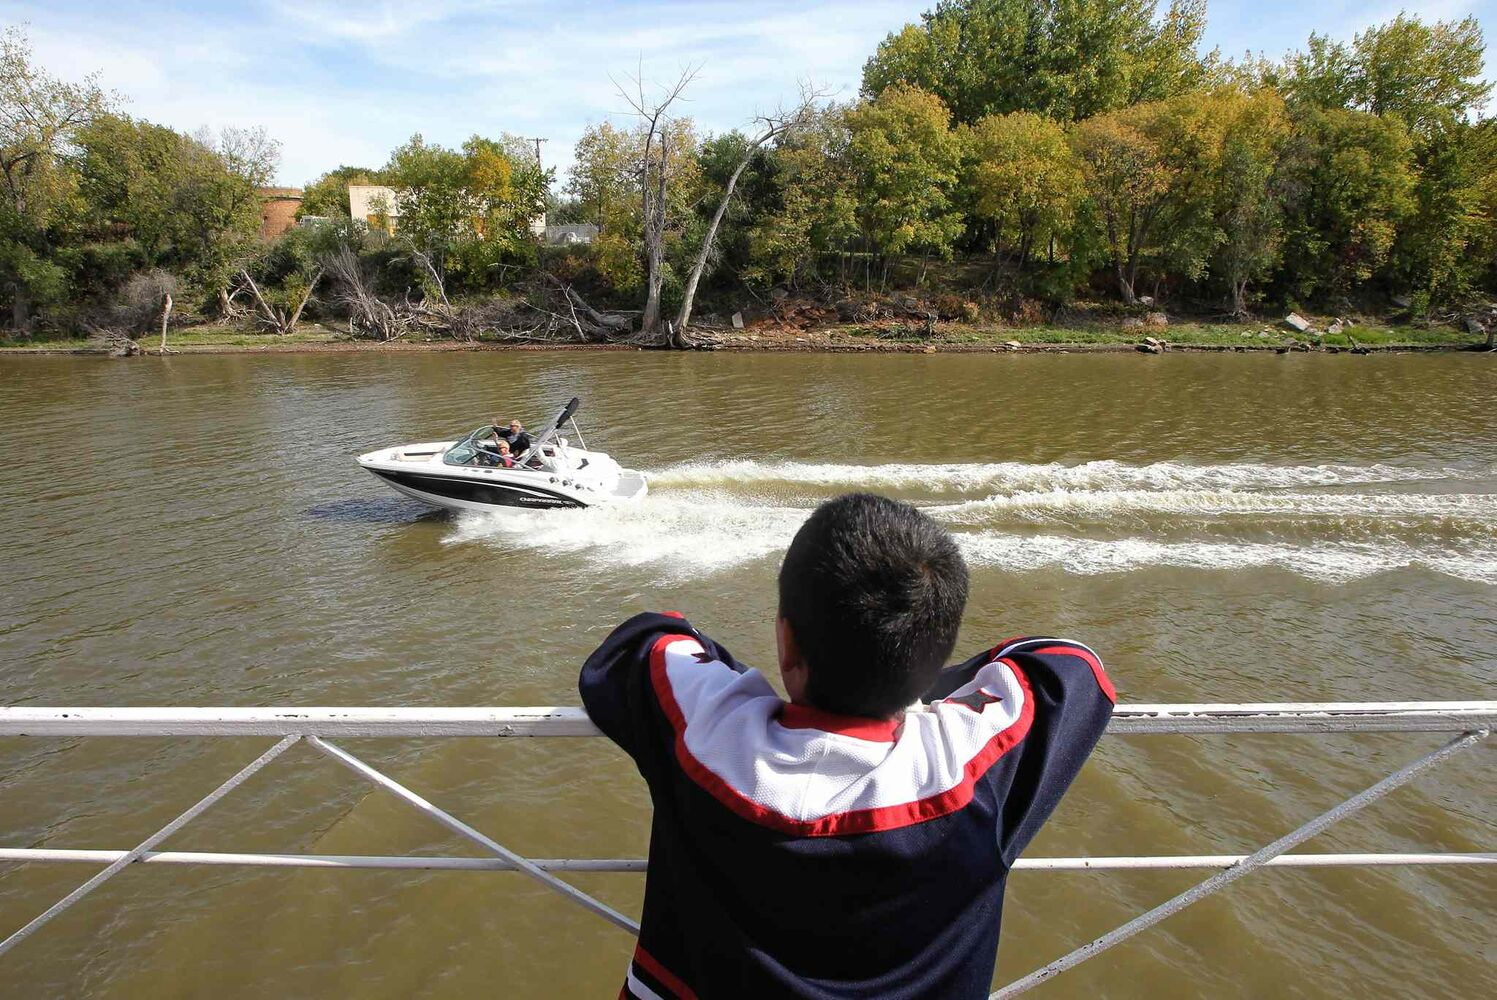 The Paddlewheel Queen has been a fixture on the Red River for decades but it may have sailed its last voyage. (Mike Deal / Winnipeg Free Press )